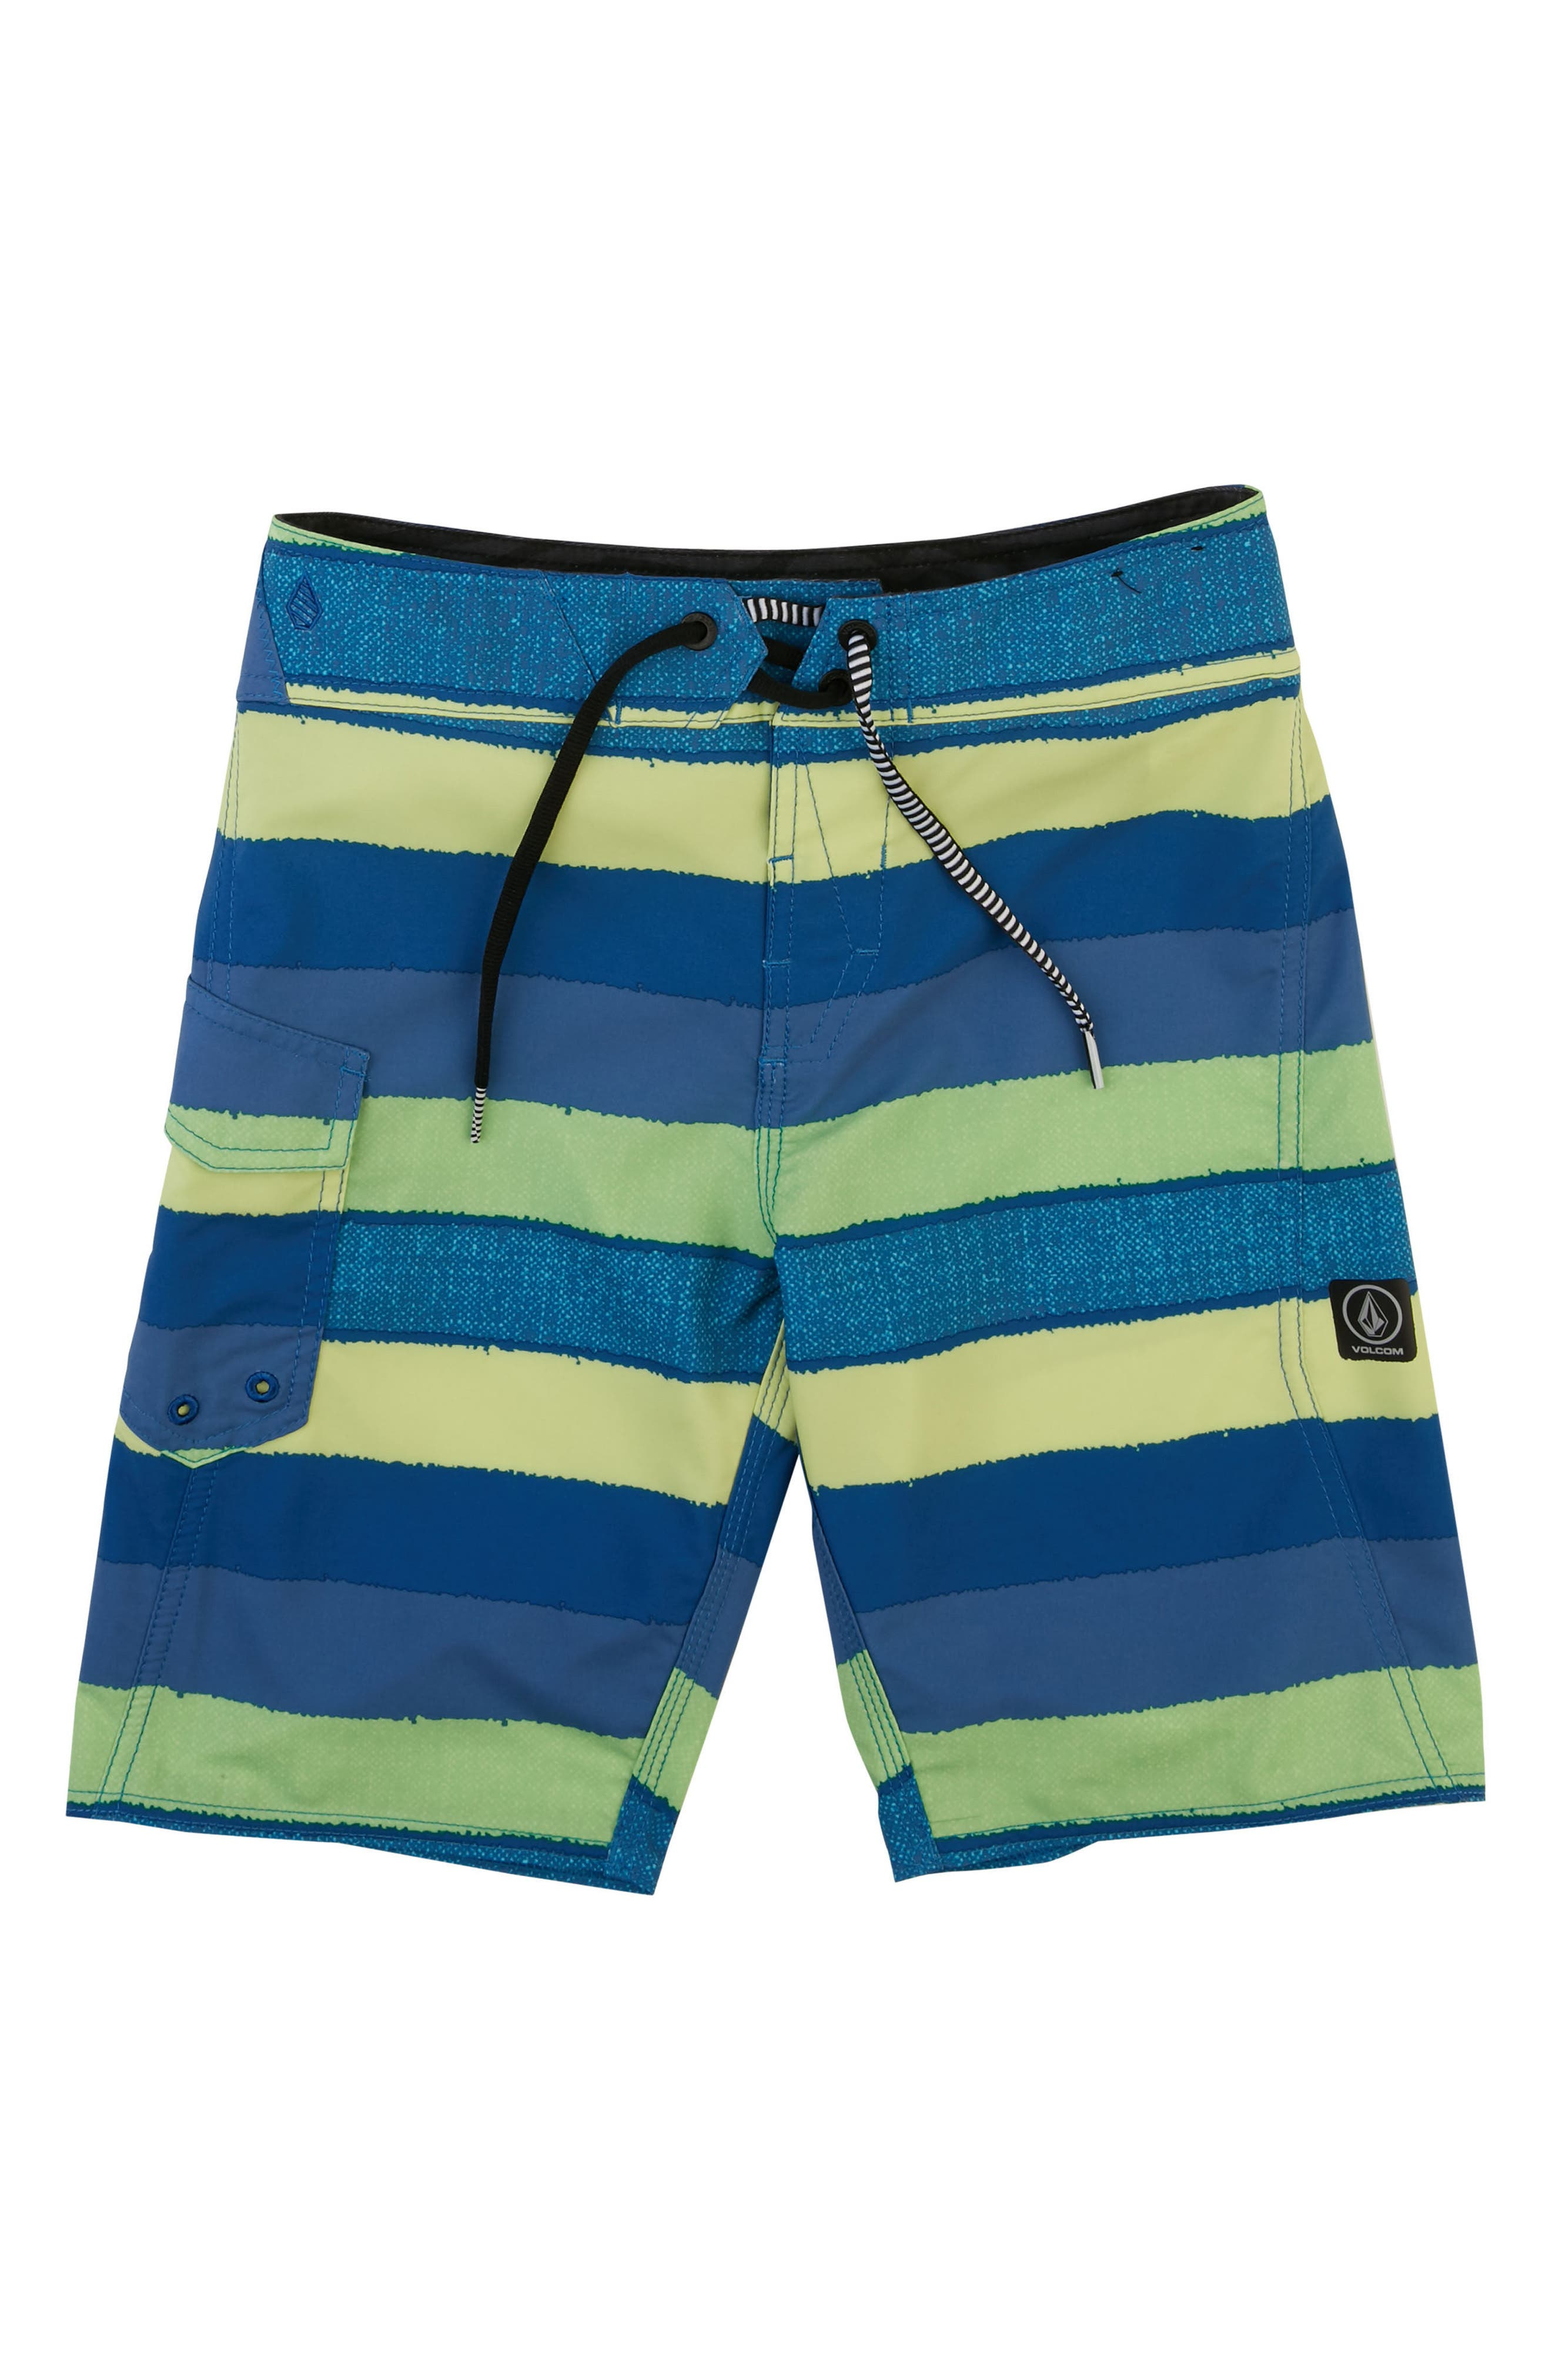 Magnetic Liney Mod Board Shorts,                             Main thumbnail 1, color,                             Shadow Lime